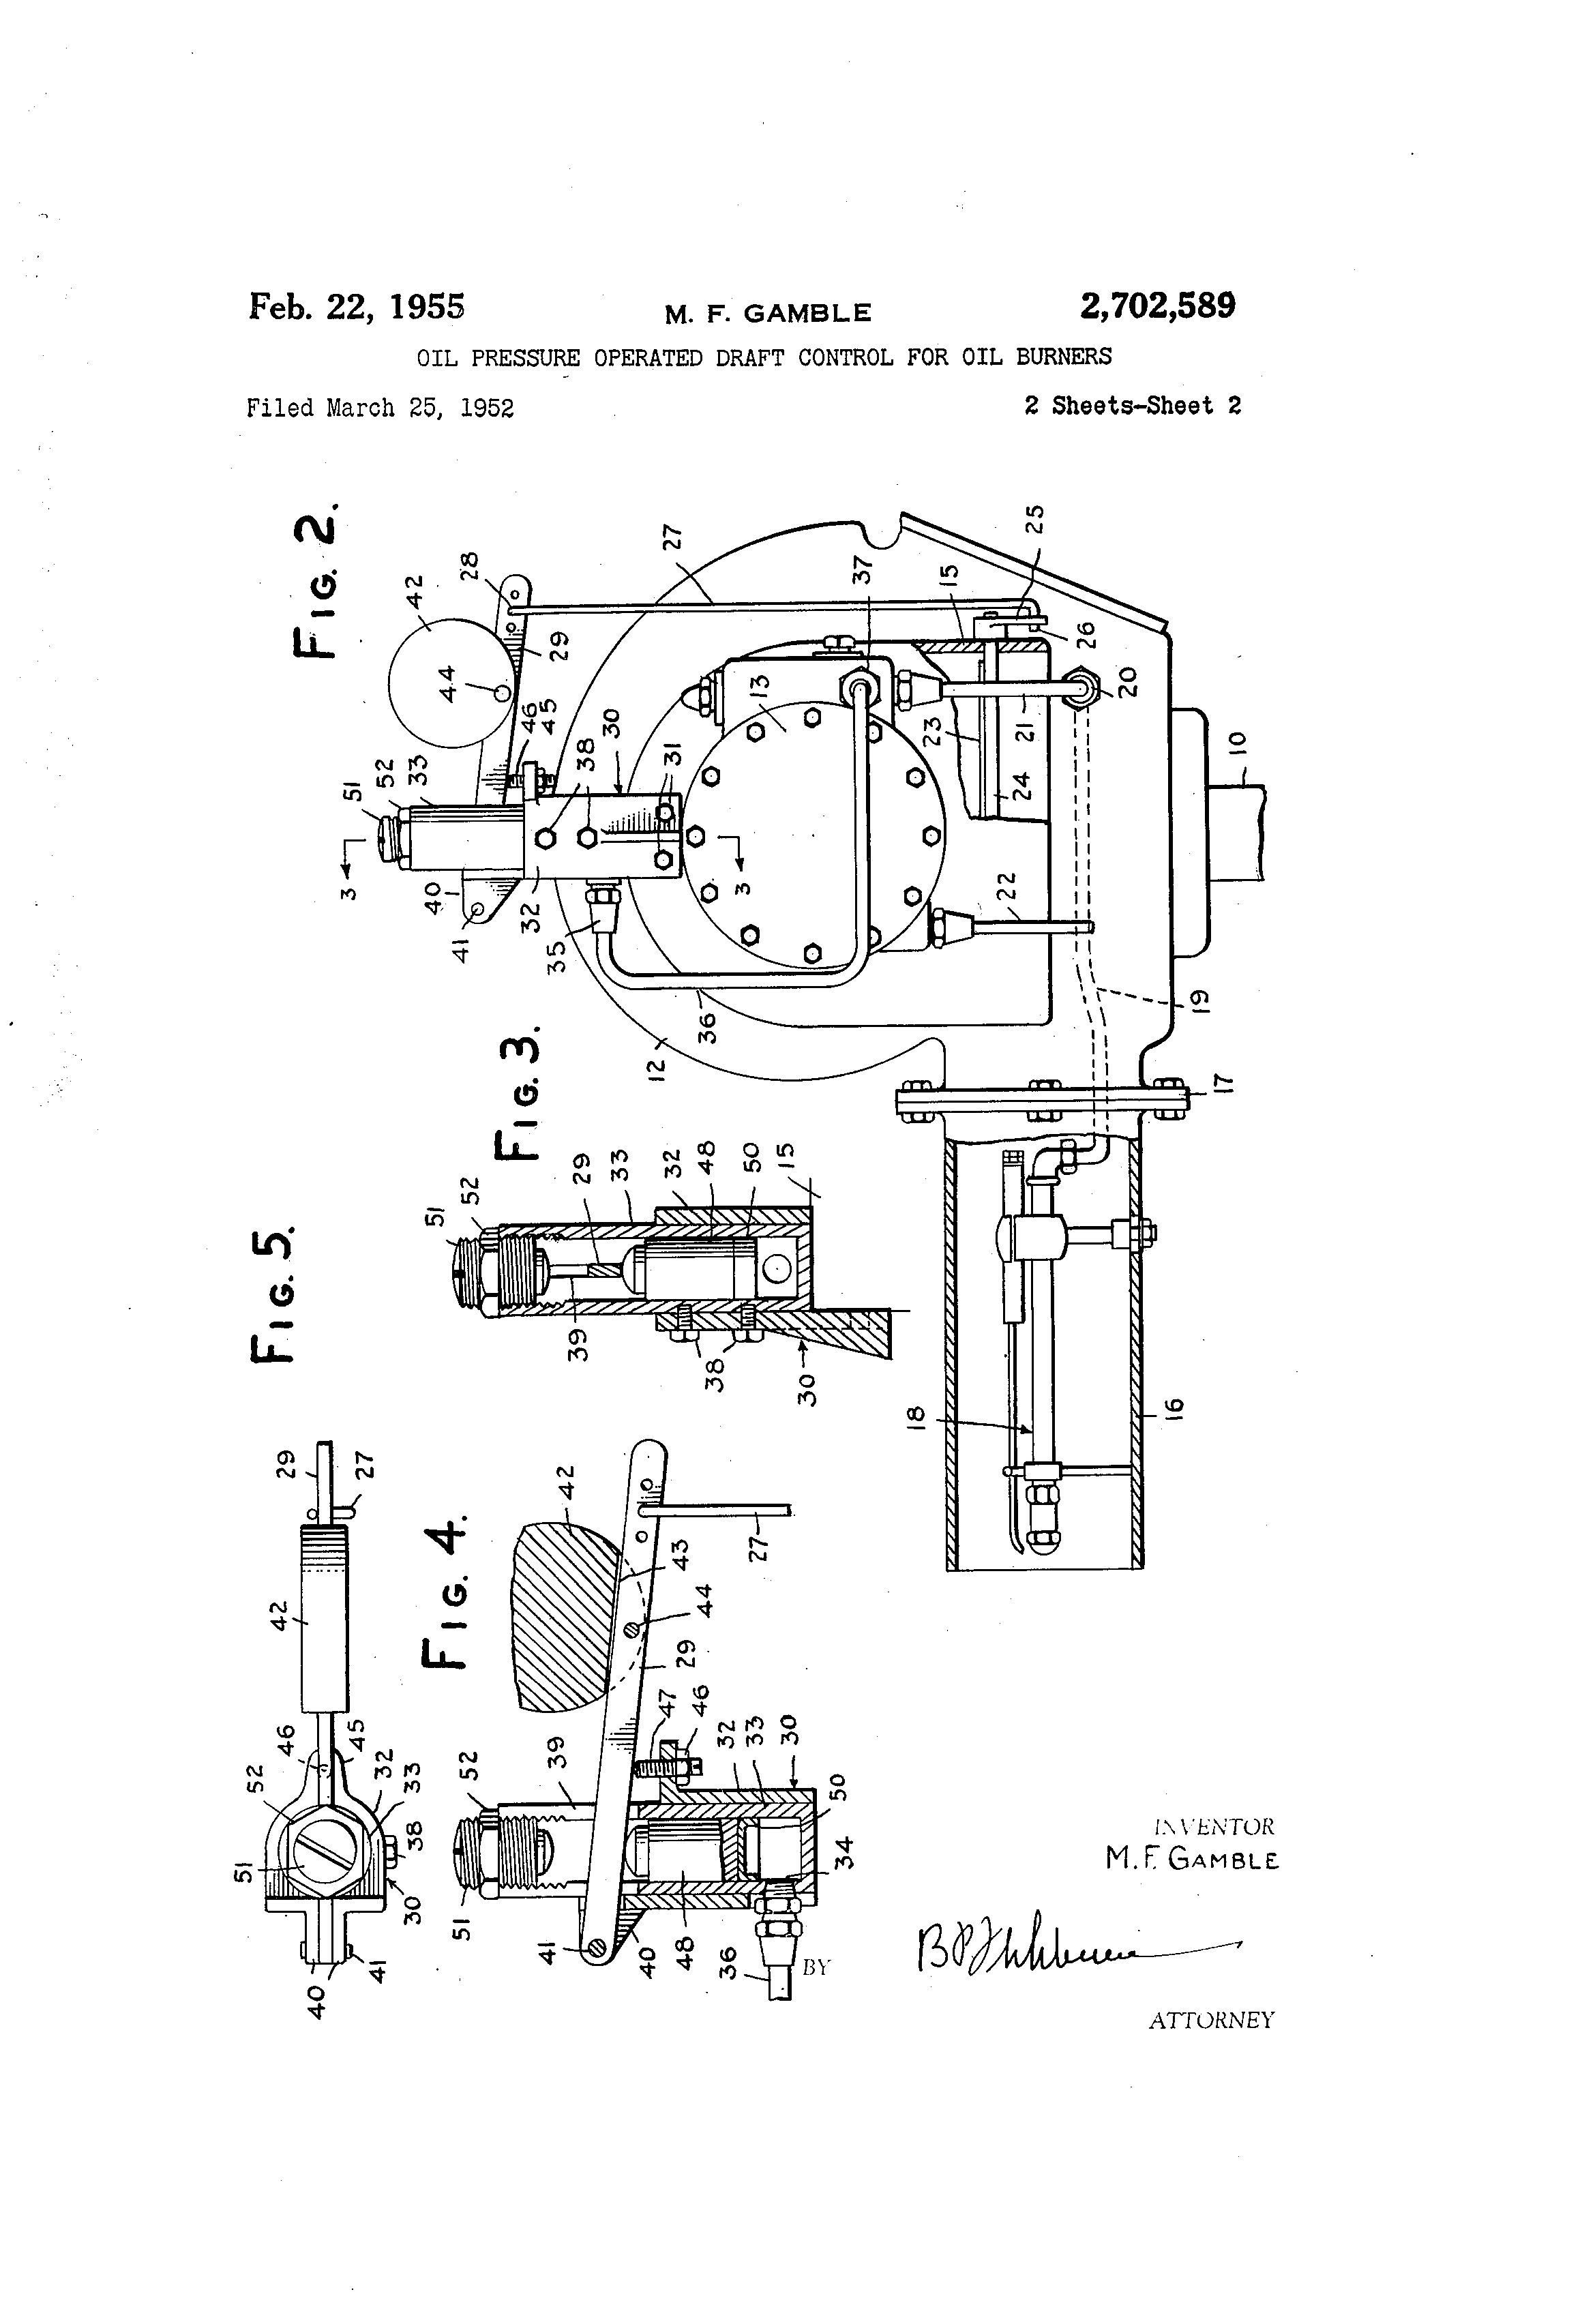 patent us2702589 - oil pressure operated draft control for oil burners